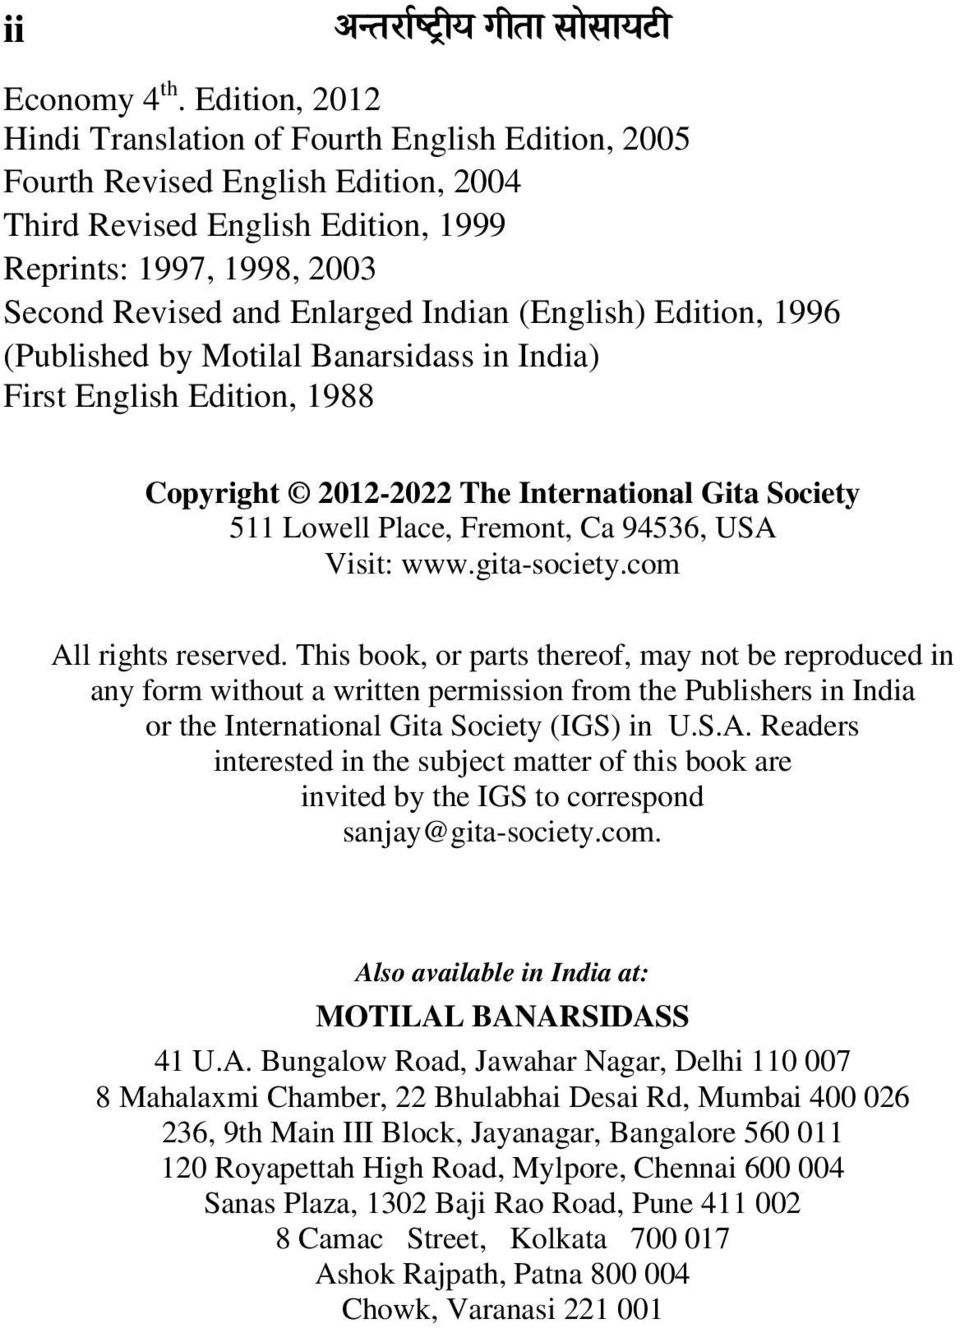 (English) Edition, 1996 (Published by Motilal Banarsidass in India) First English Edition, 1988 Copyright 2012-2022 The International Gita Society 511 Lowell Place, Fremont, Ca 94536, USA Visit: www.